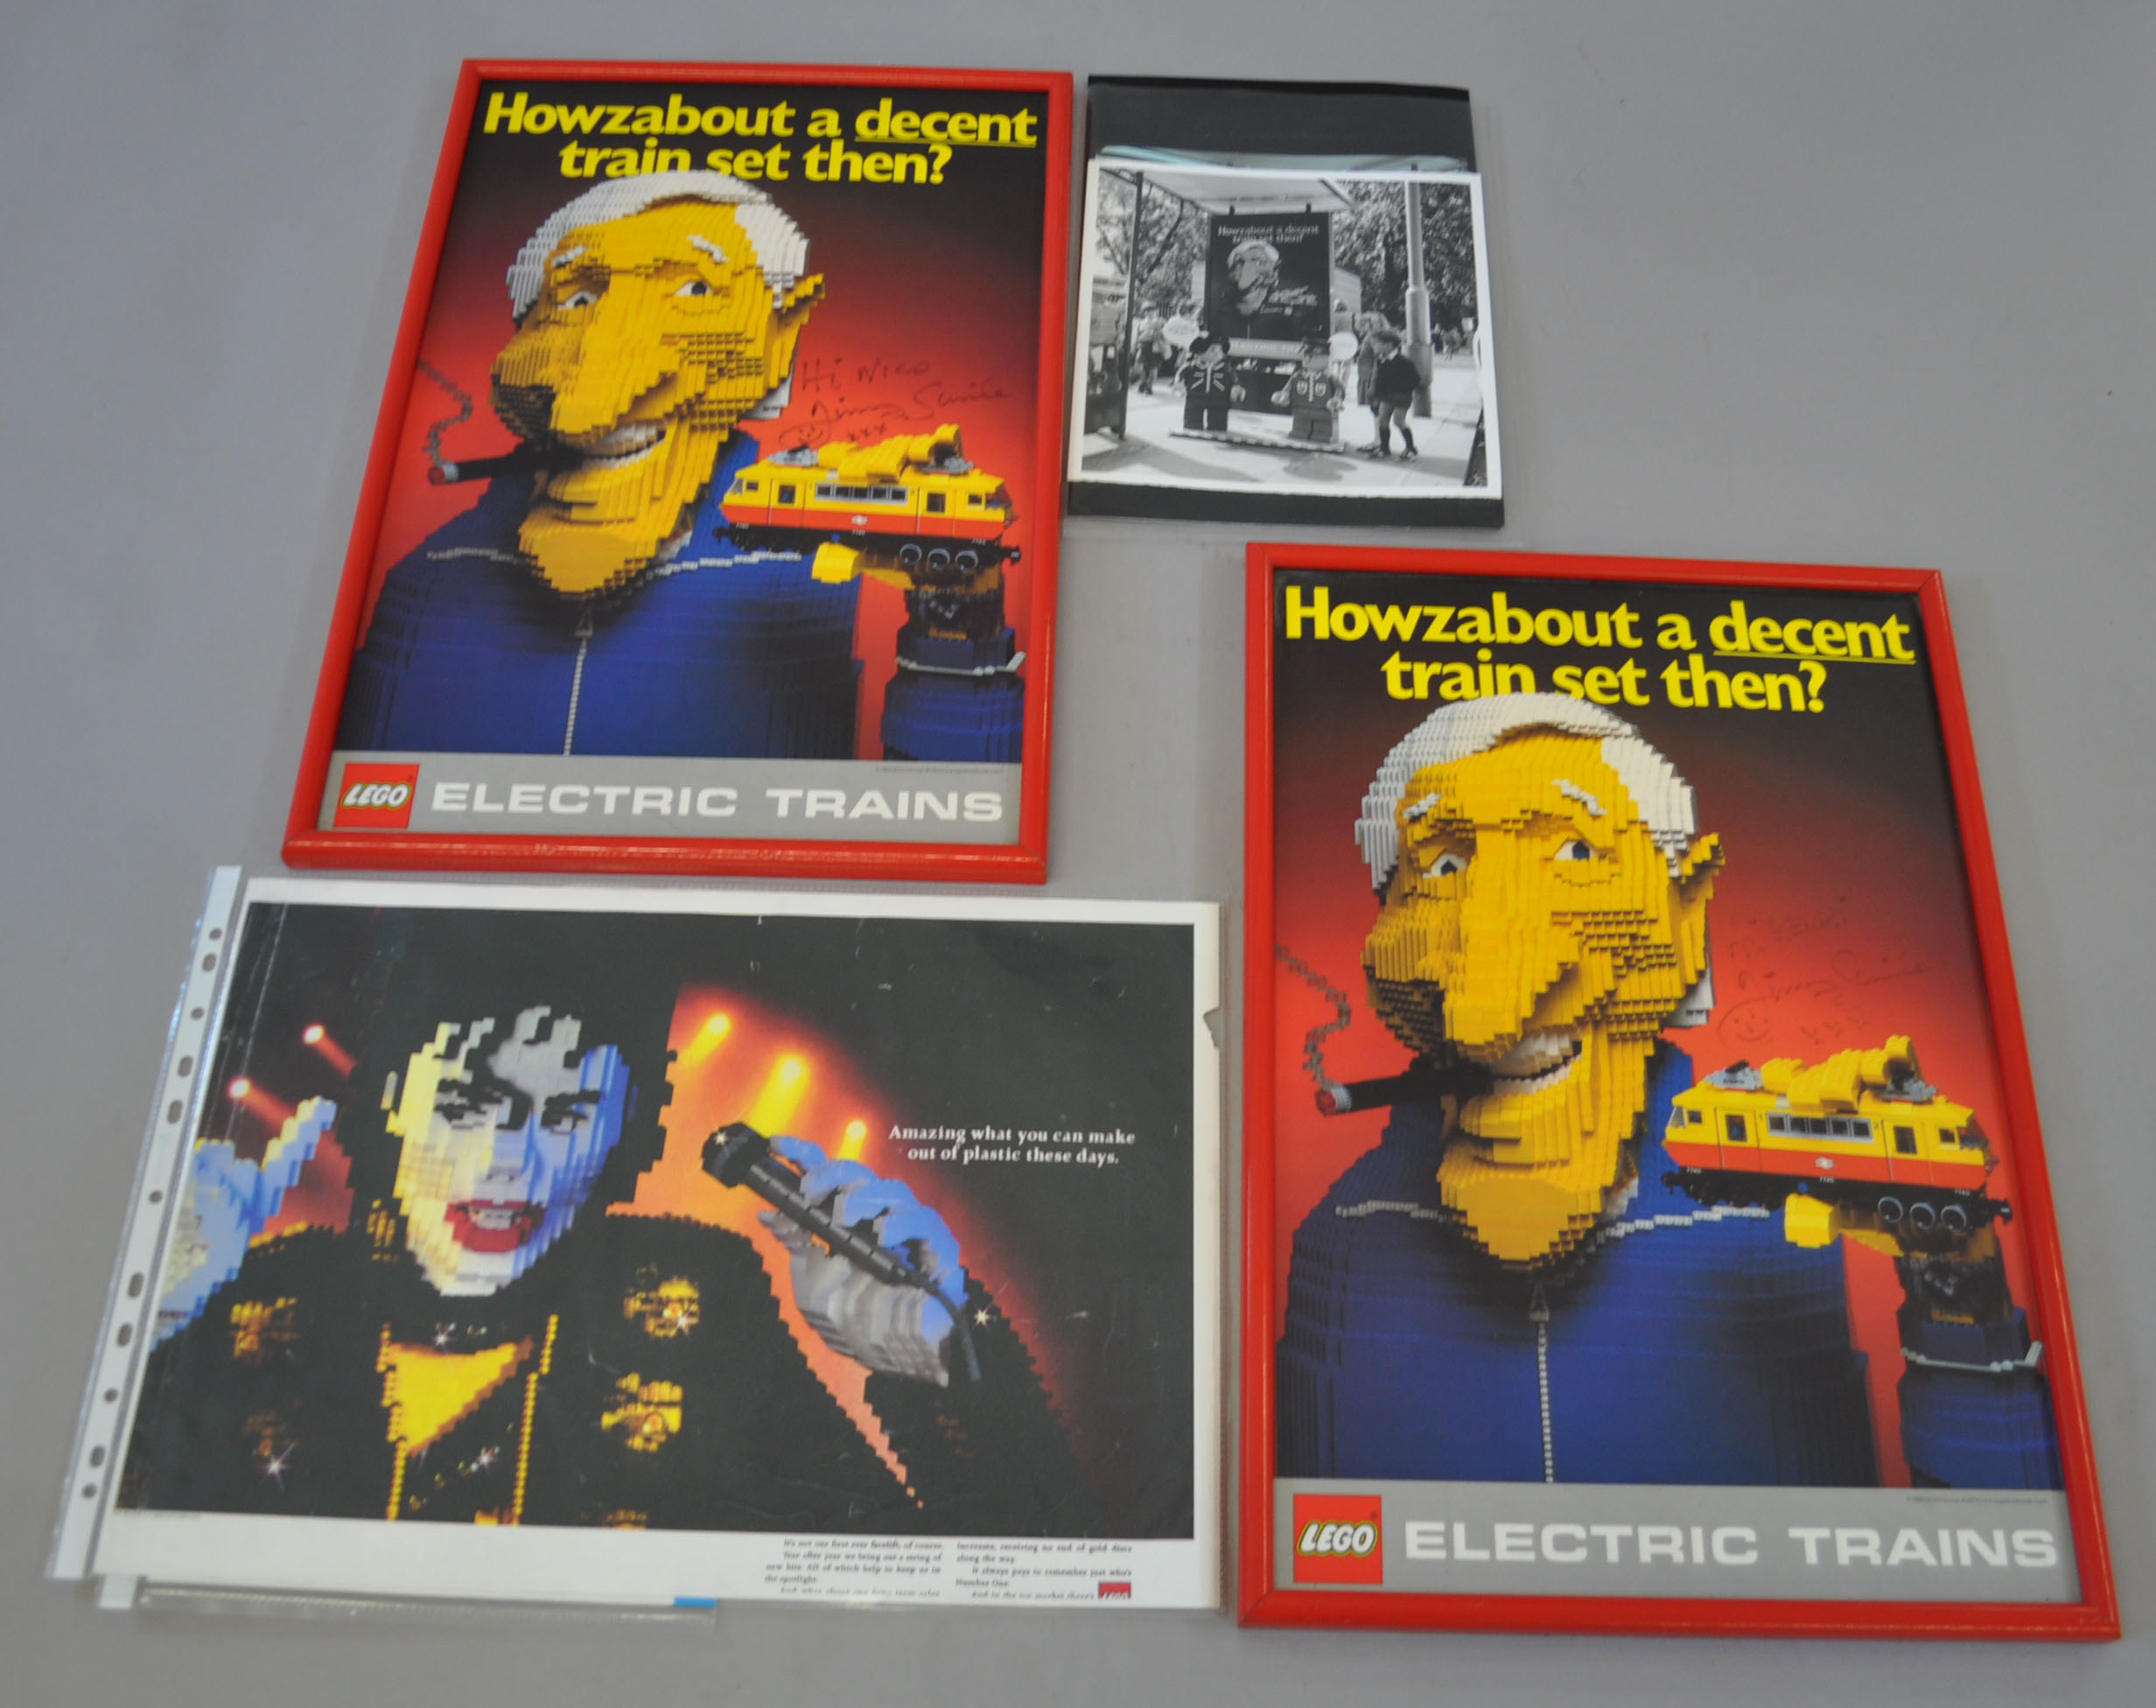 Two framed Lego Electric Trains promotional posters, featuring a Lego model of Jimmy Saville, and